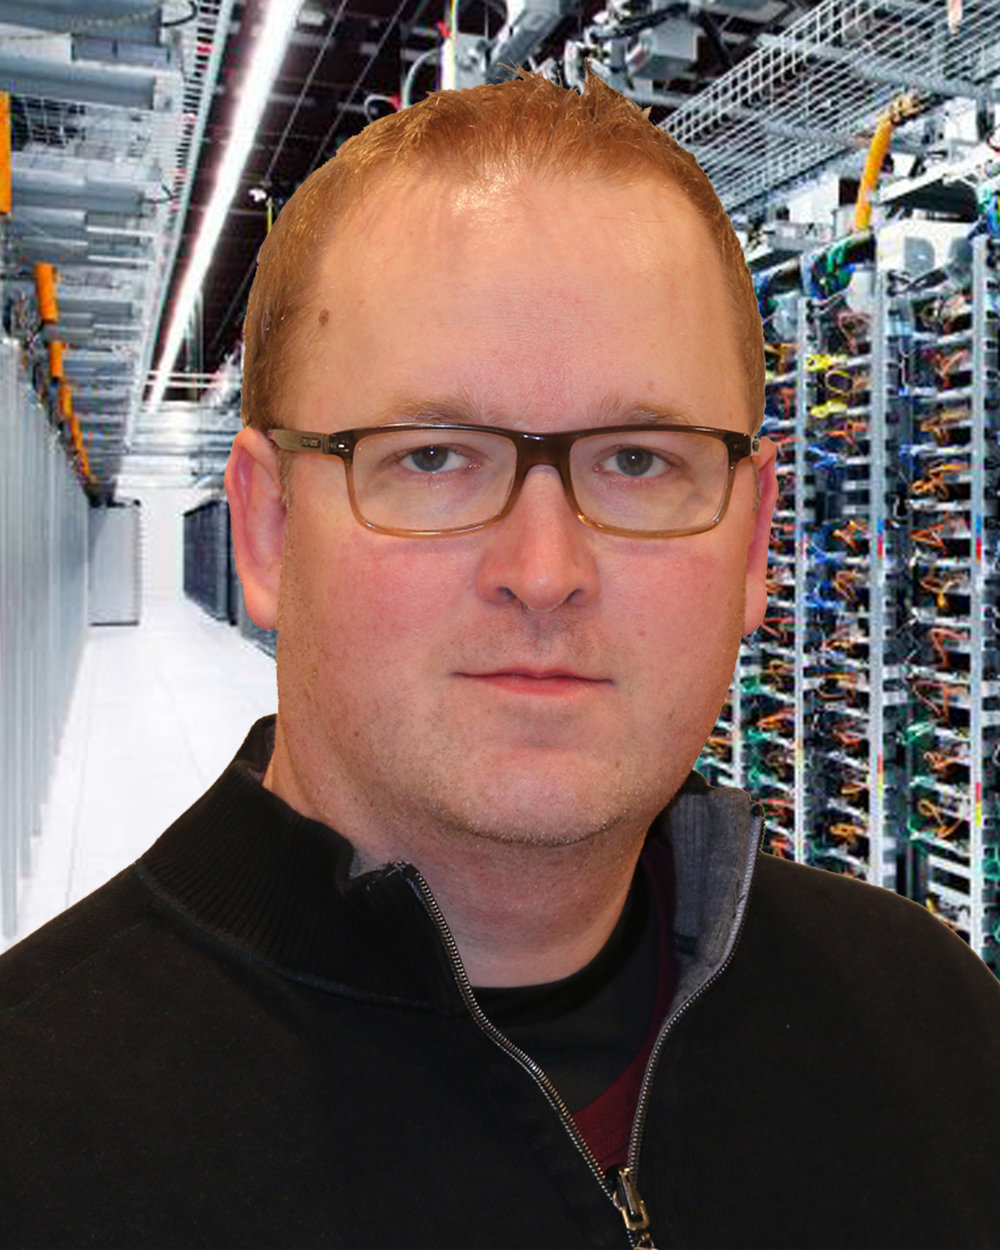 Jim Range, Software Engineer